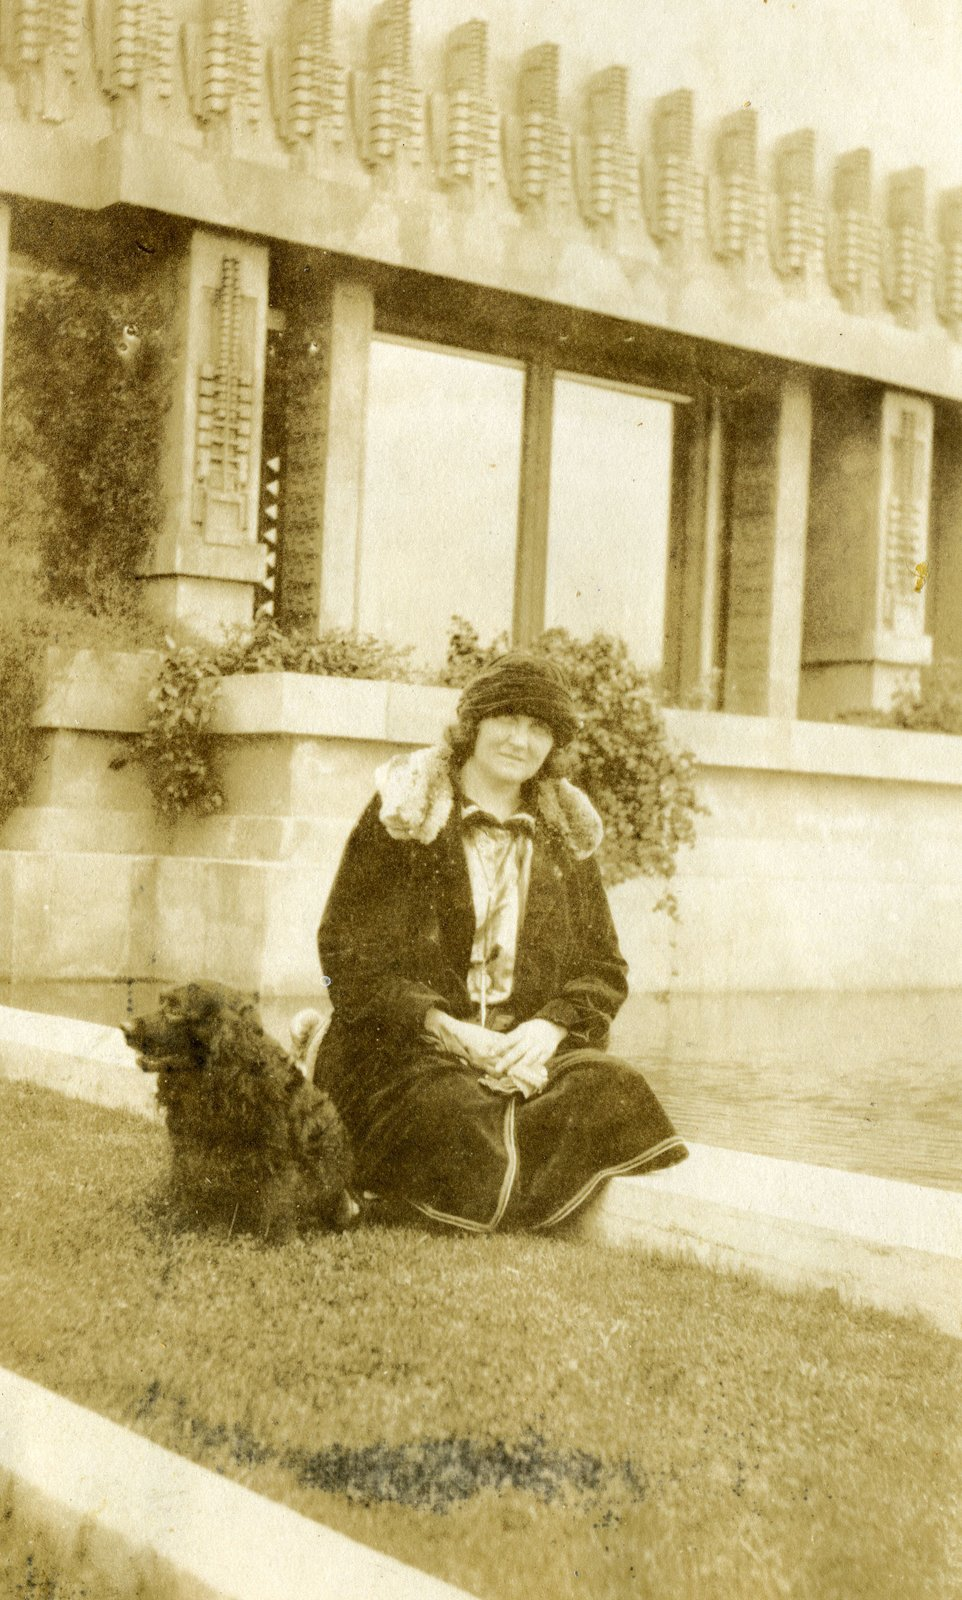 Shown here is Aline Barnsdall herself, lounging on the grounds of the Hollyhock House with her dog. The story of the residence could not be told without the powerful presence she held over the project. From the collection of David Devine, courtesy of the Hollyhock House